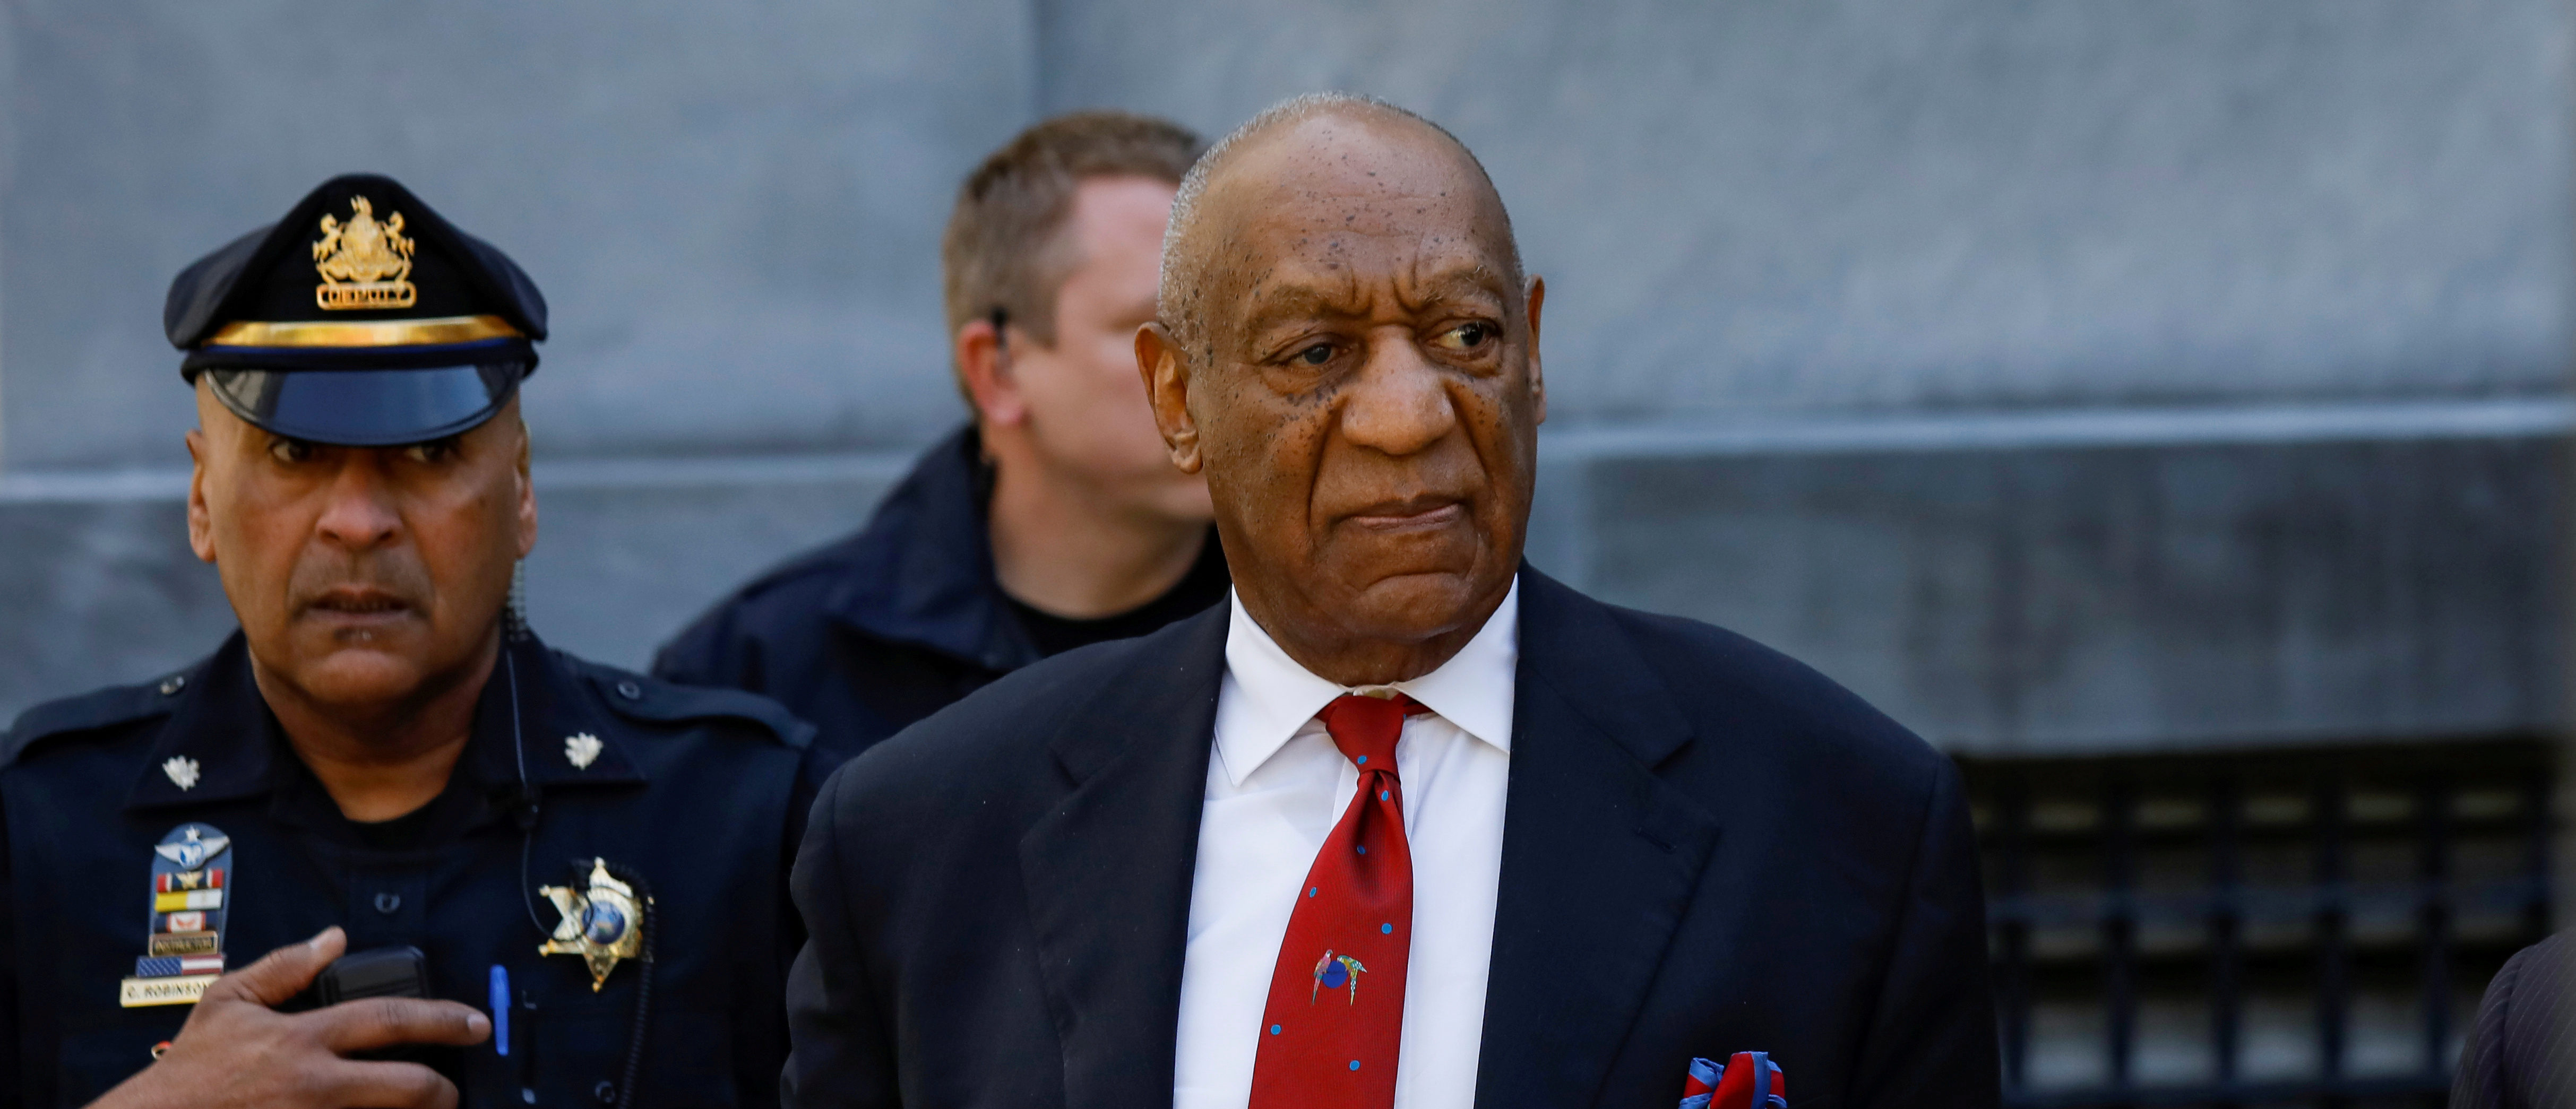 FILE PHOTO: Actor and comedian Bill Cosby exits the Montgomery County Courthouse after a jury convicted him in a sexual assault retrial in Norristown, Pennsylvania, U.S., April 26, 2018. REUTERS/Brendan McDermid/File Photo - RC19F2957BE0